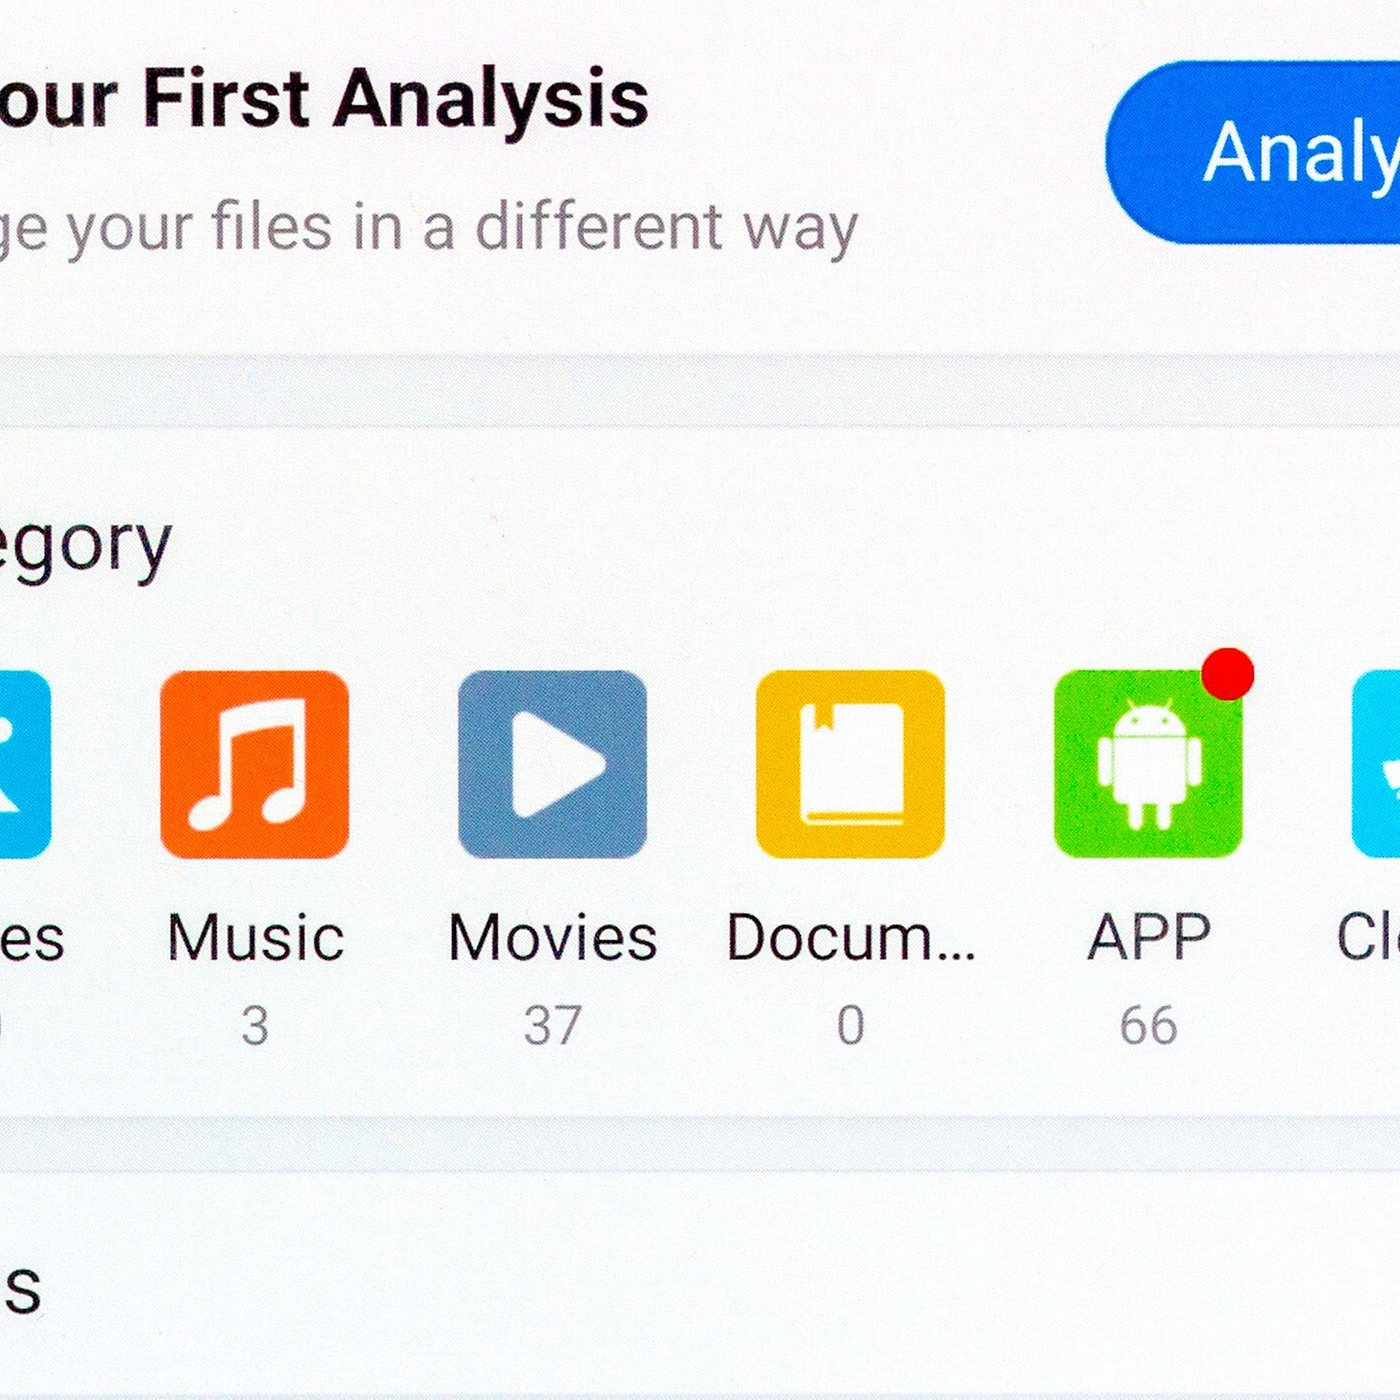 Here's why we're removing ES File Explorer from our best